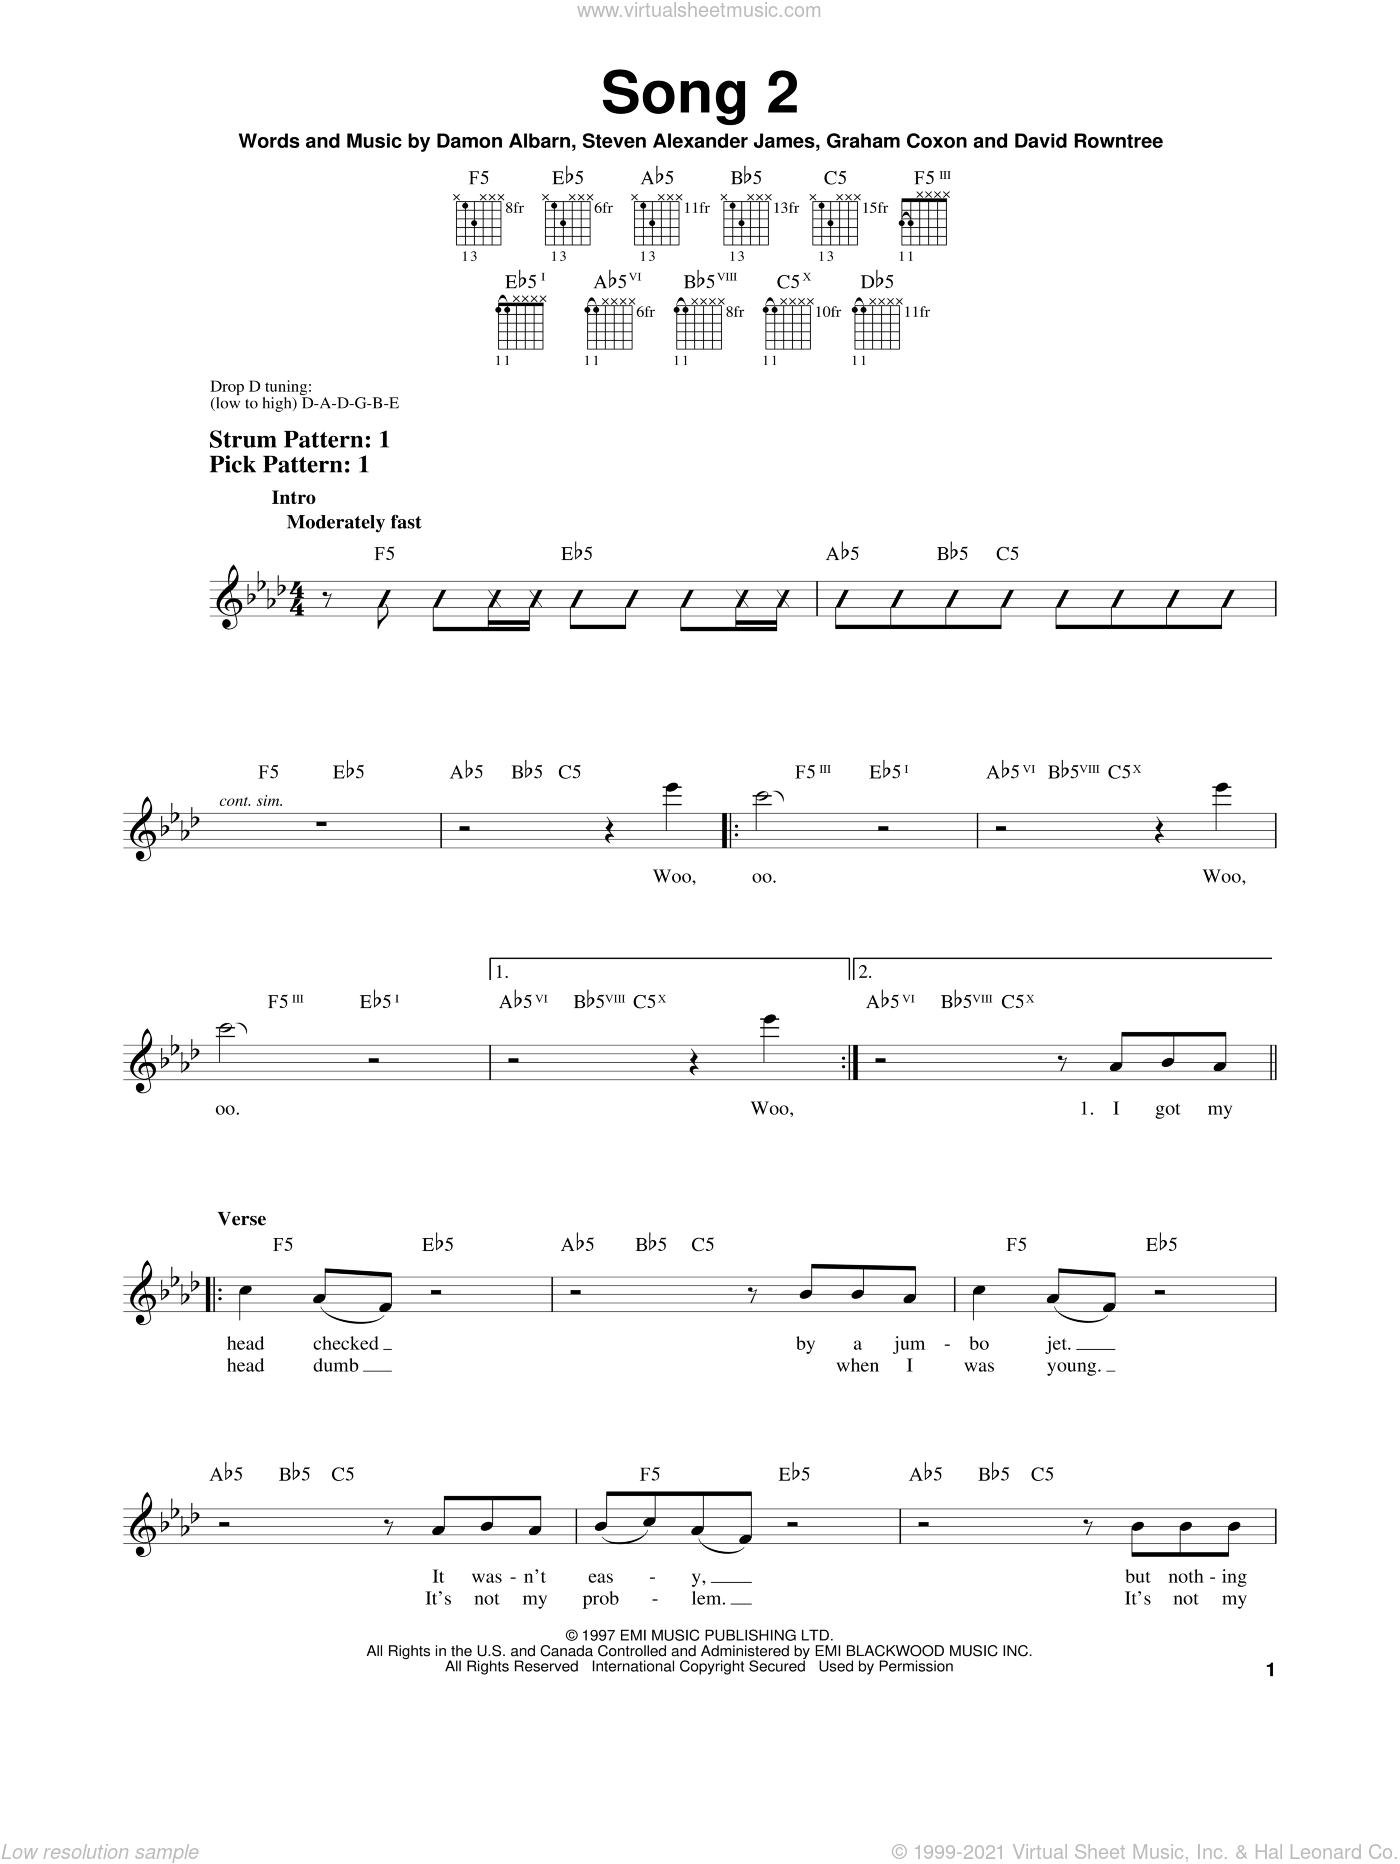 Song 2 sheet music for guitar solo (chords) by Blur, Damon Albarn, David Rowntree, Graham Coxon and Steven Alexander James, easy guitar (chords)